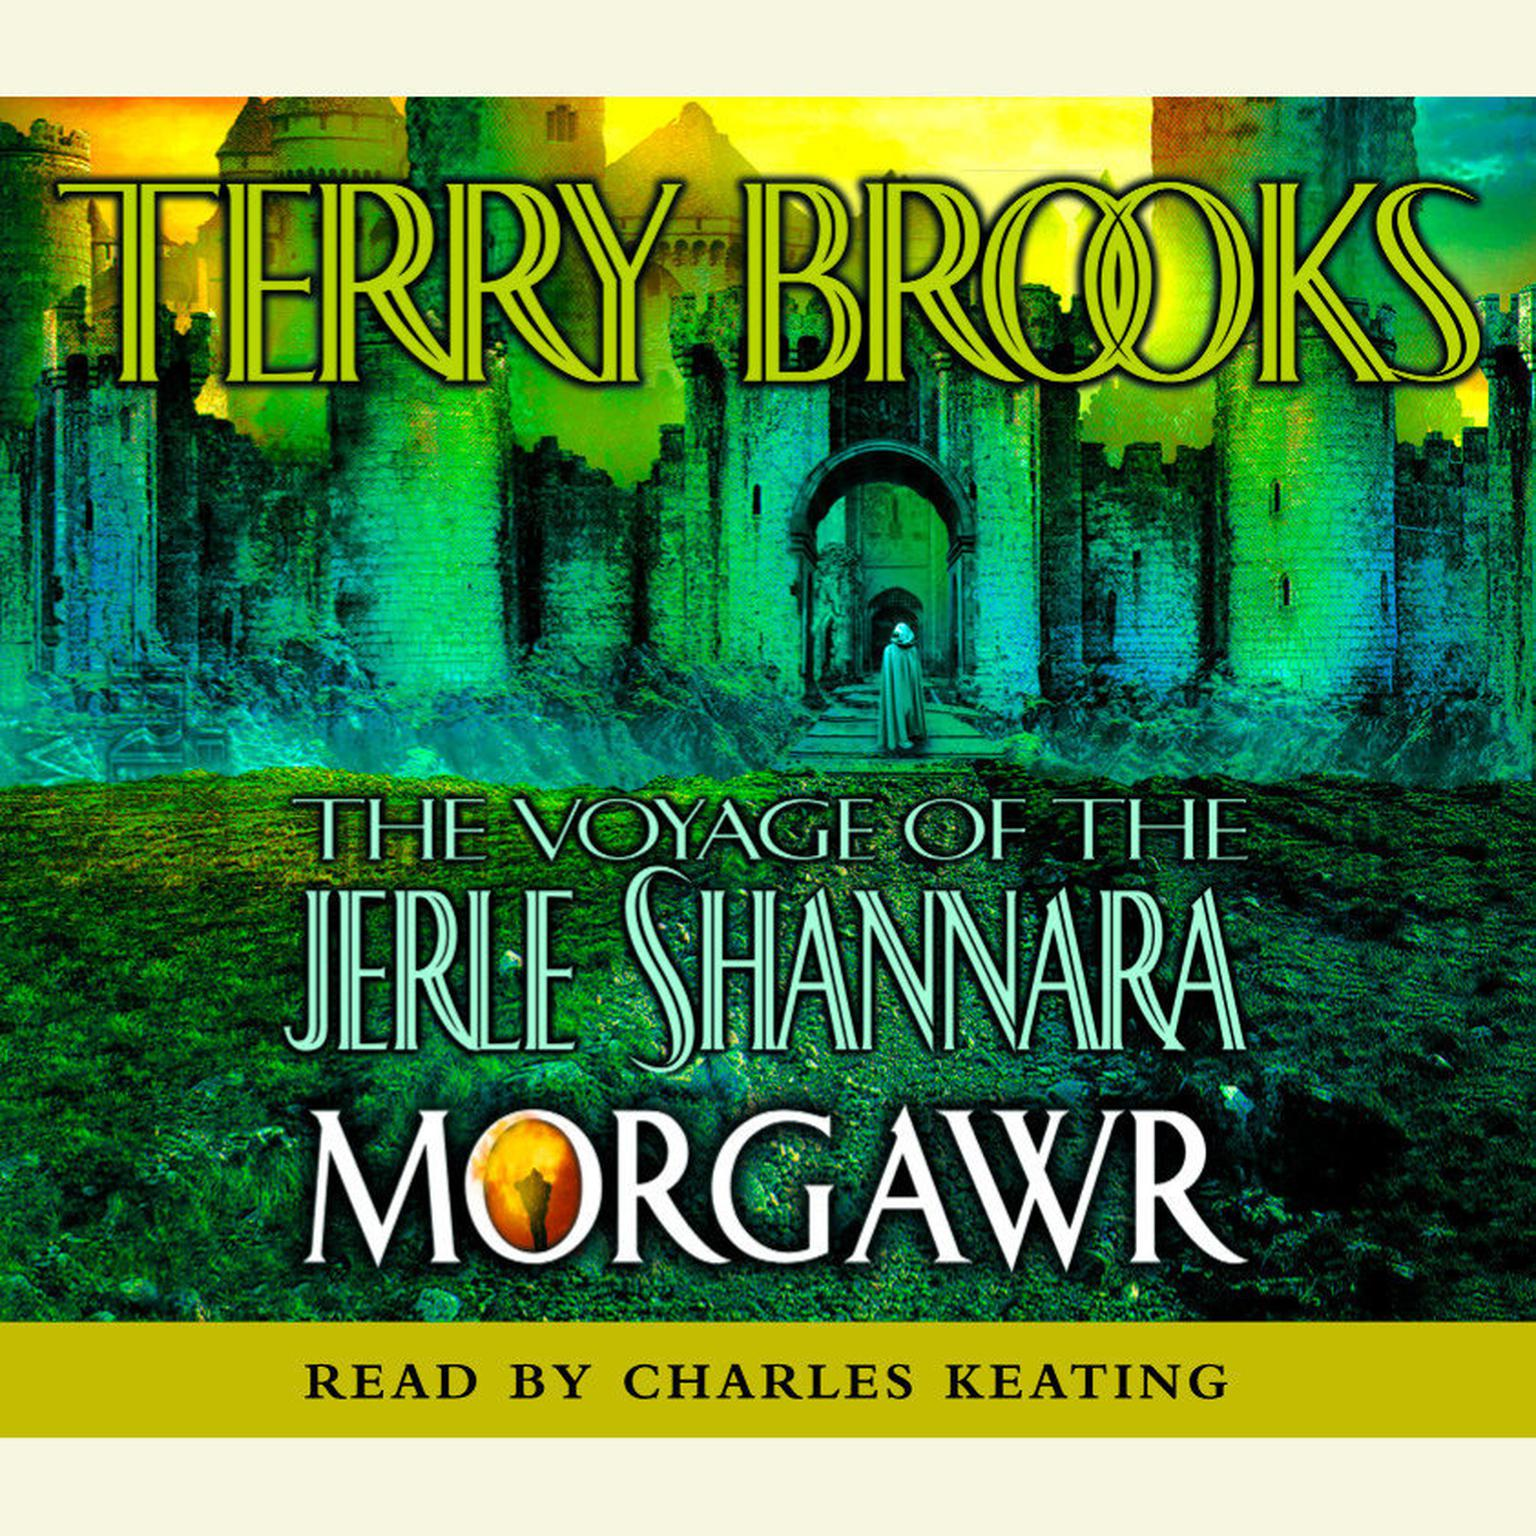 Printable The Voyage of the Jerle Shannara: Morgawr Audiobook Cover Art